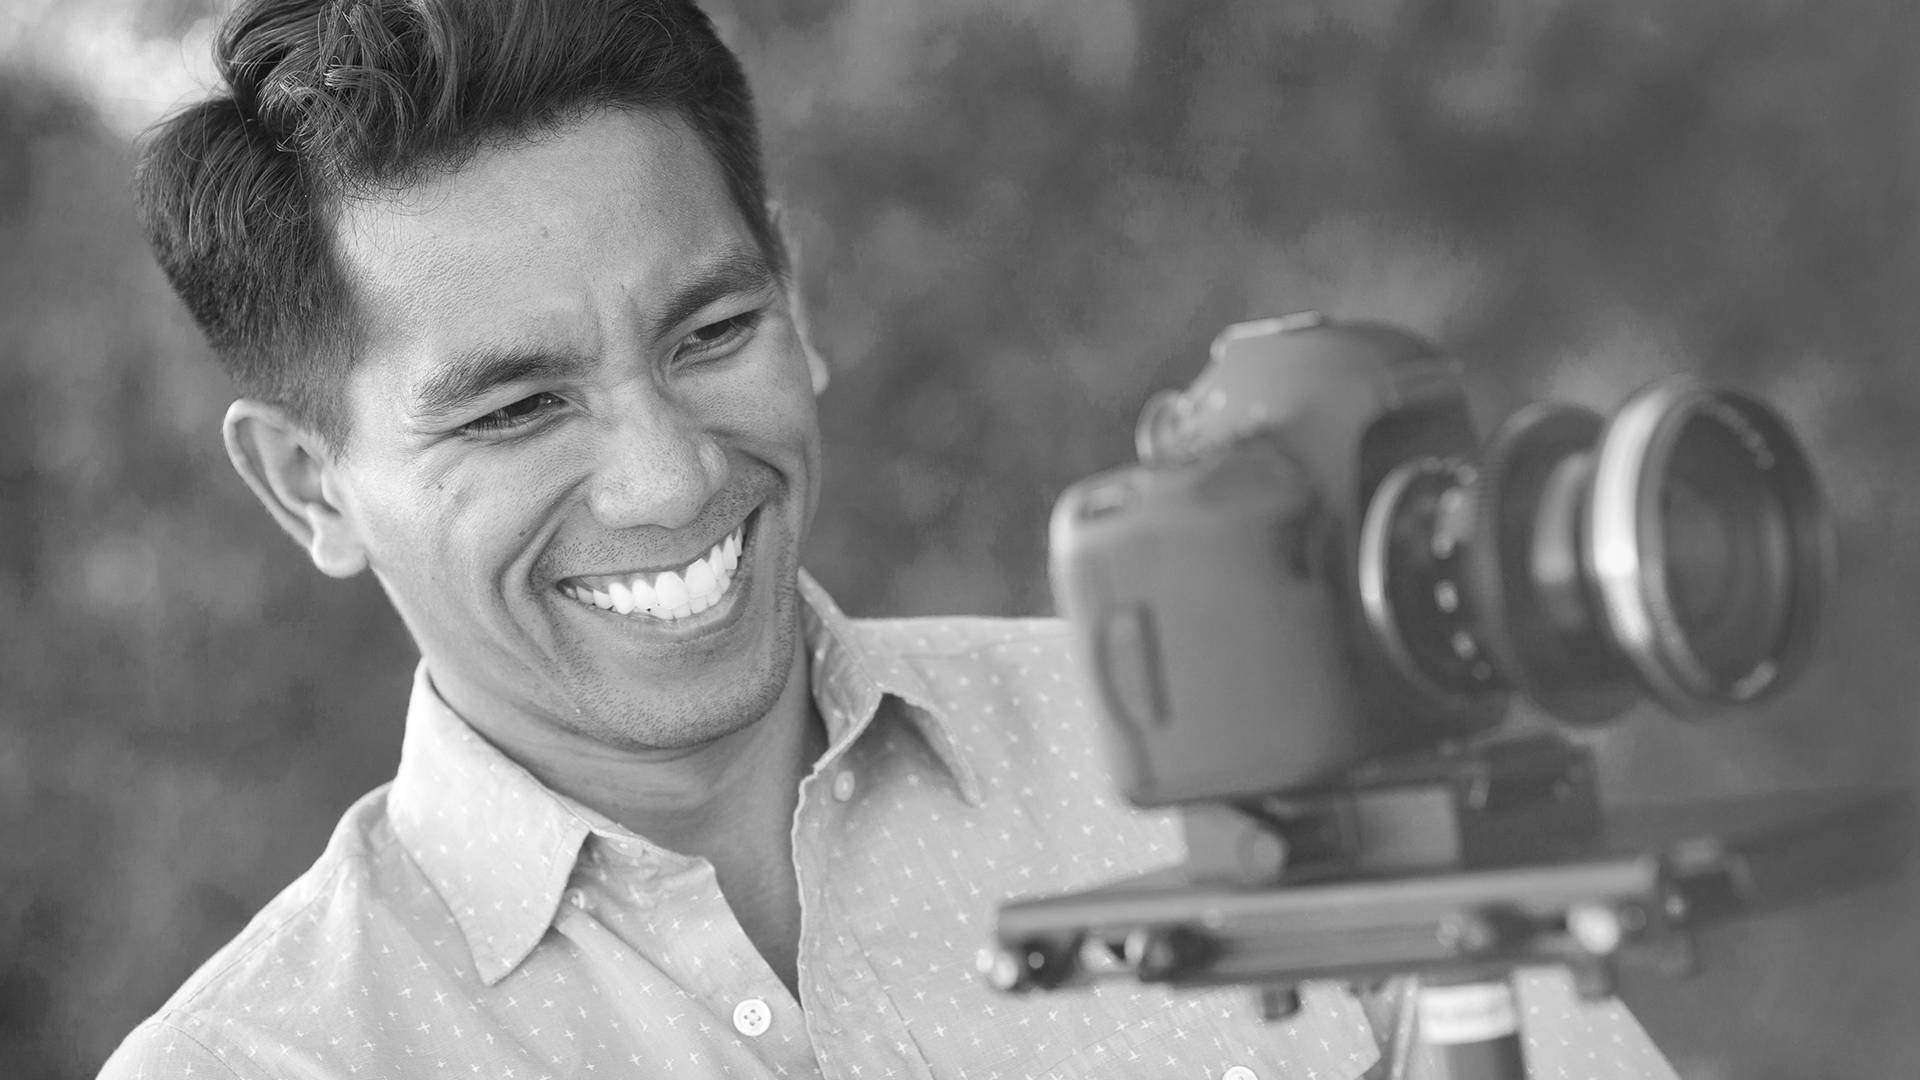 Guy smiling while looking into camera display